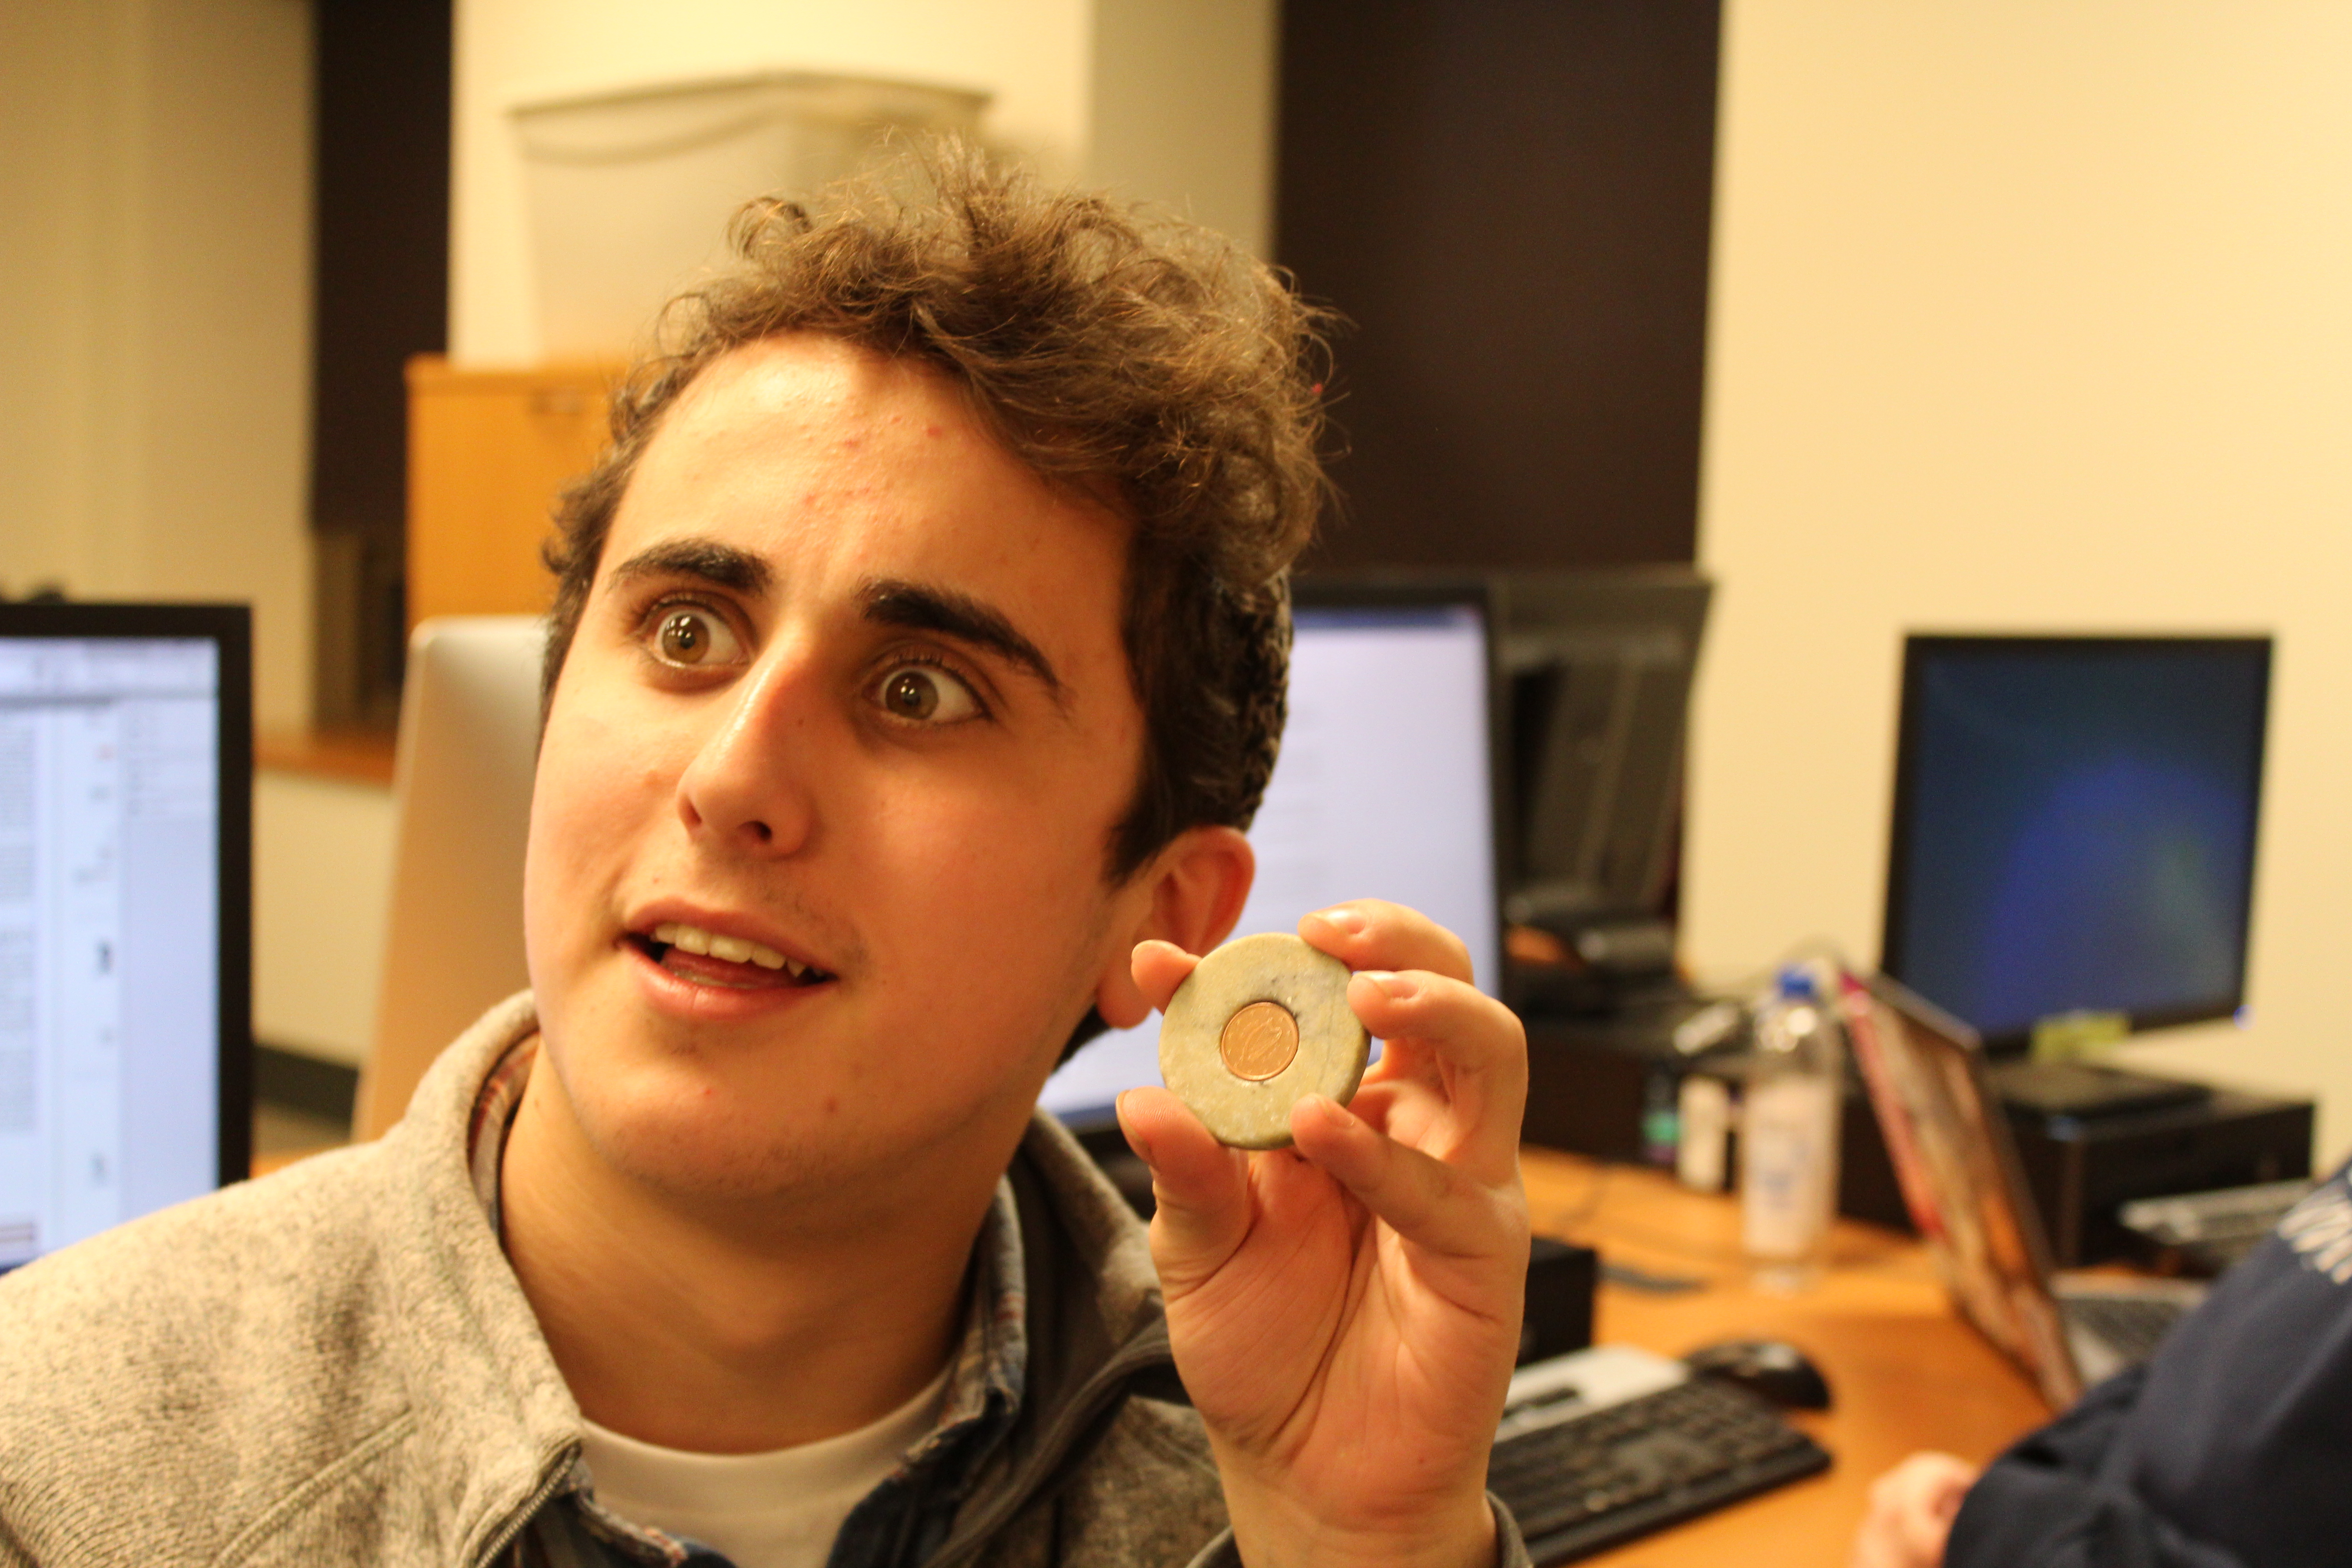 """My sister brought it back for me from Ireland. I keep it in my backpack,"" said freshman Jonathon Rubin, holding an Irish coin encased in a small stone."